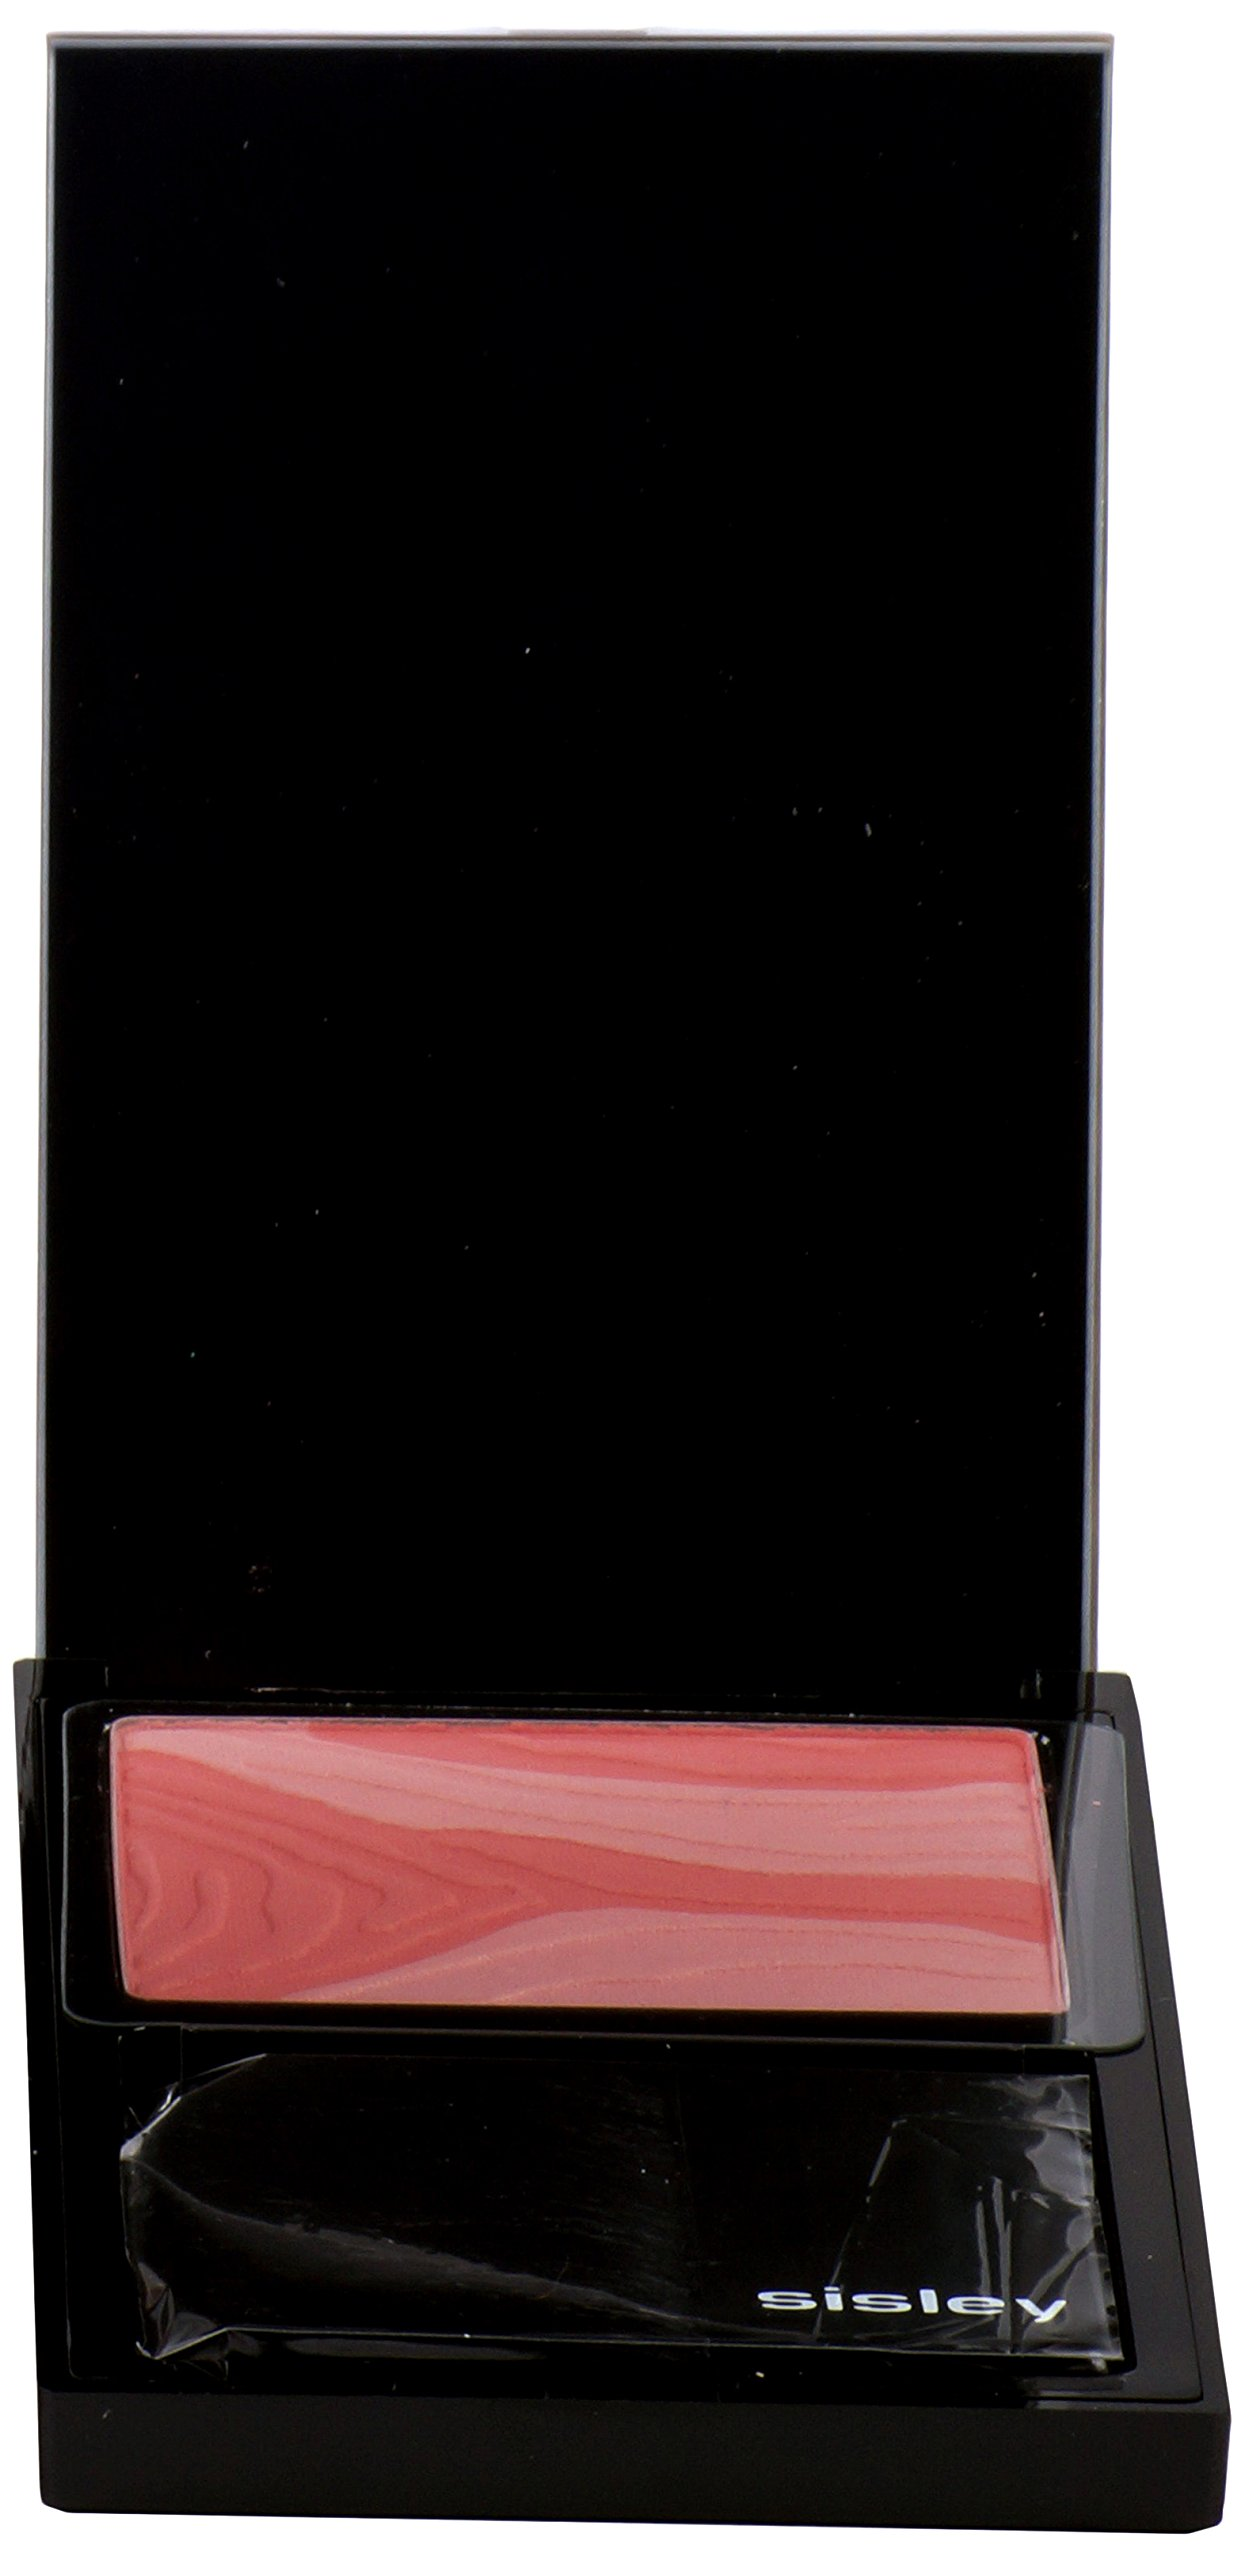 Sisley Phyto-Blush Eclat for Women, No. 5 Pinky Coral, 0.19 Pound